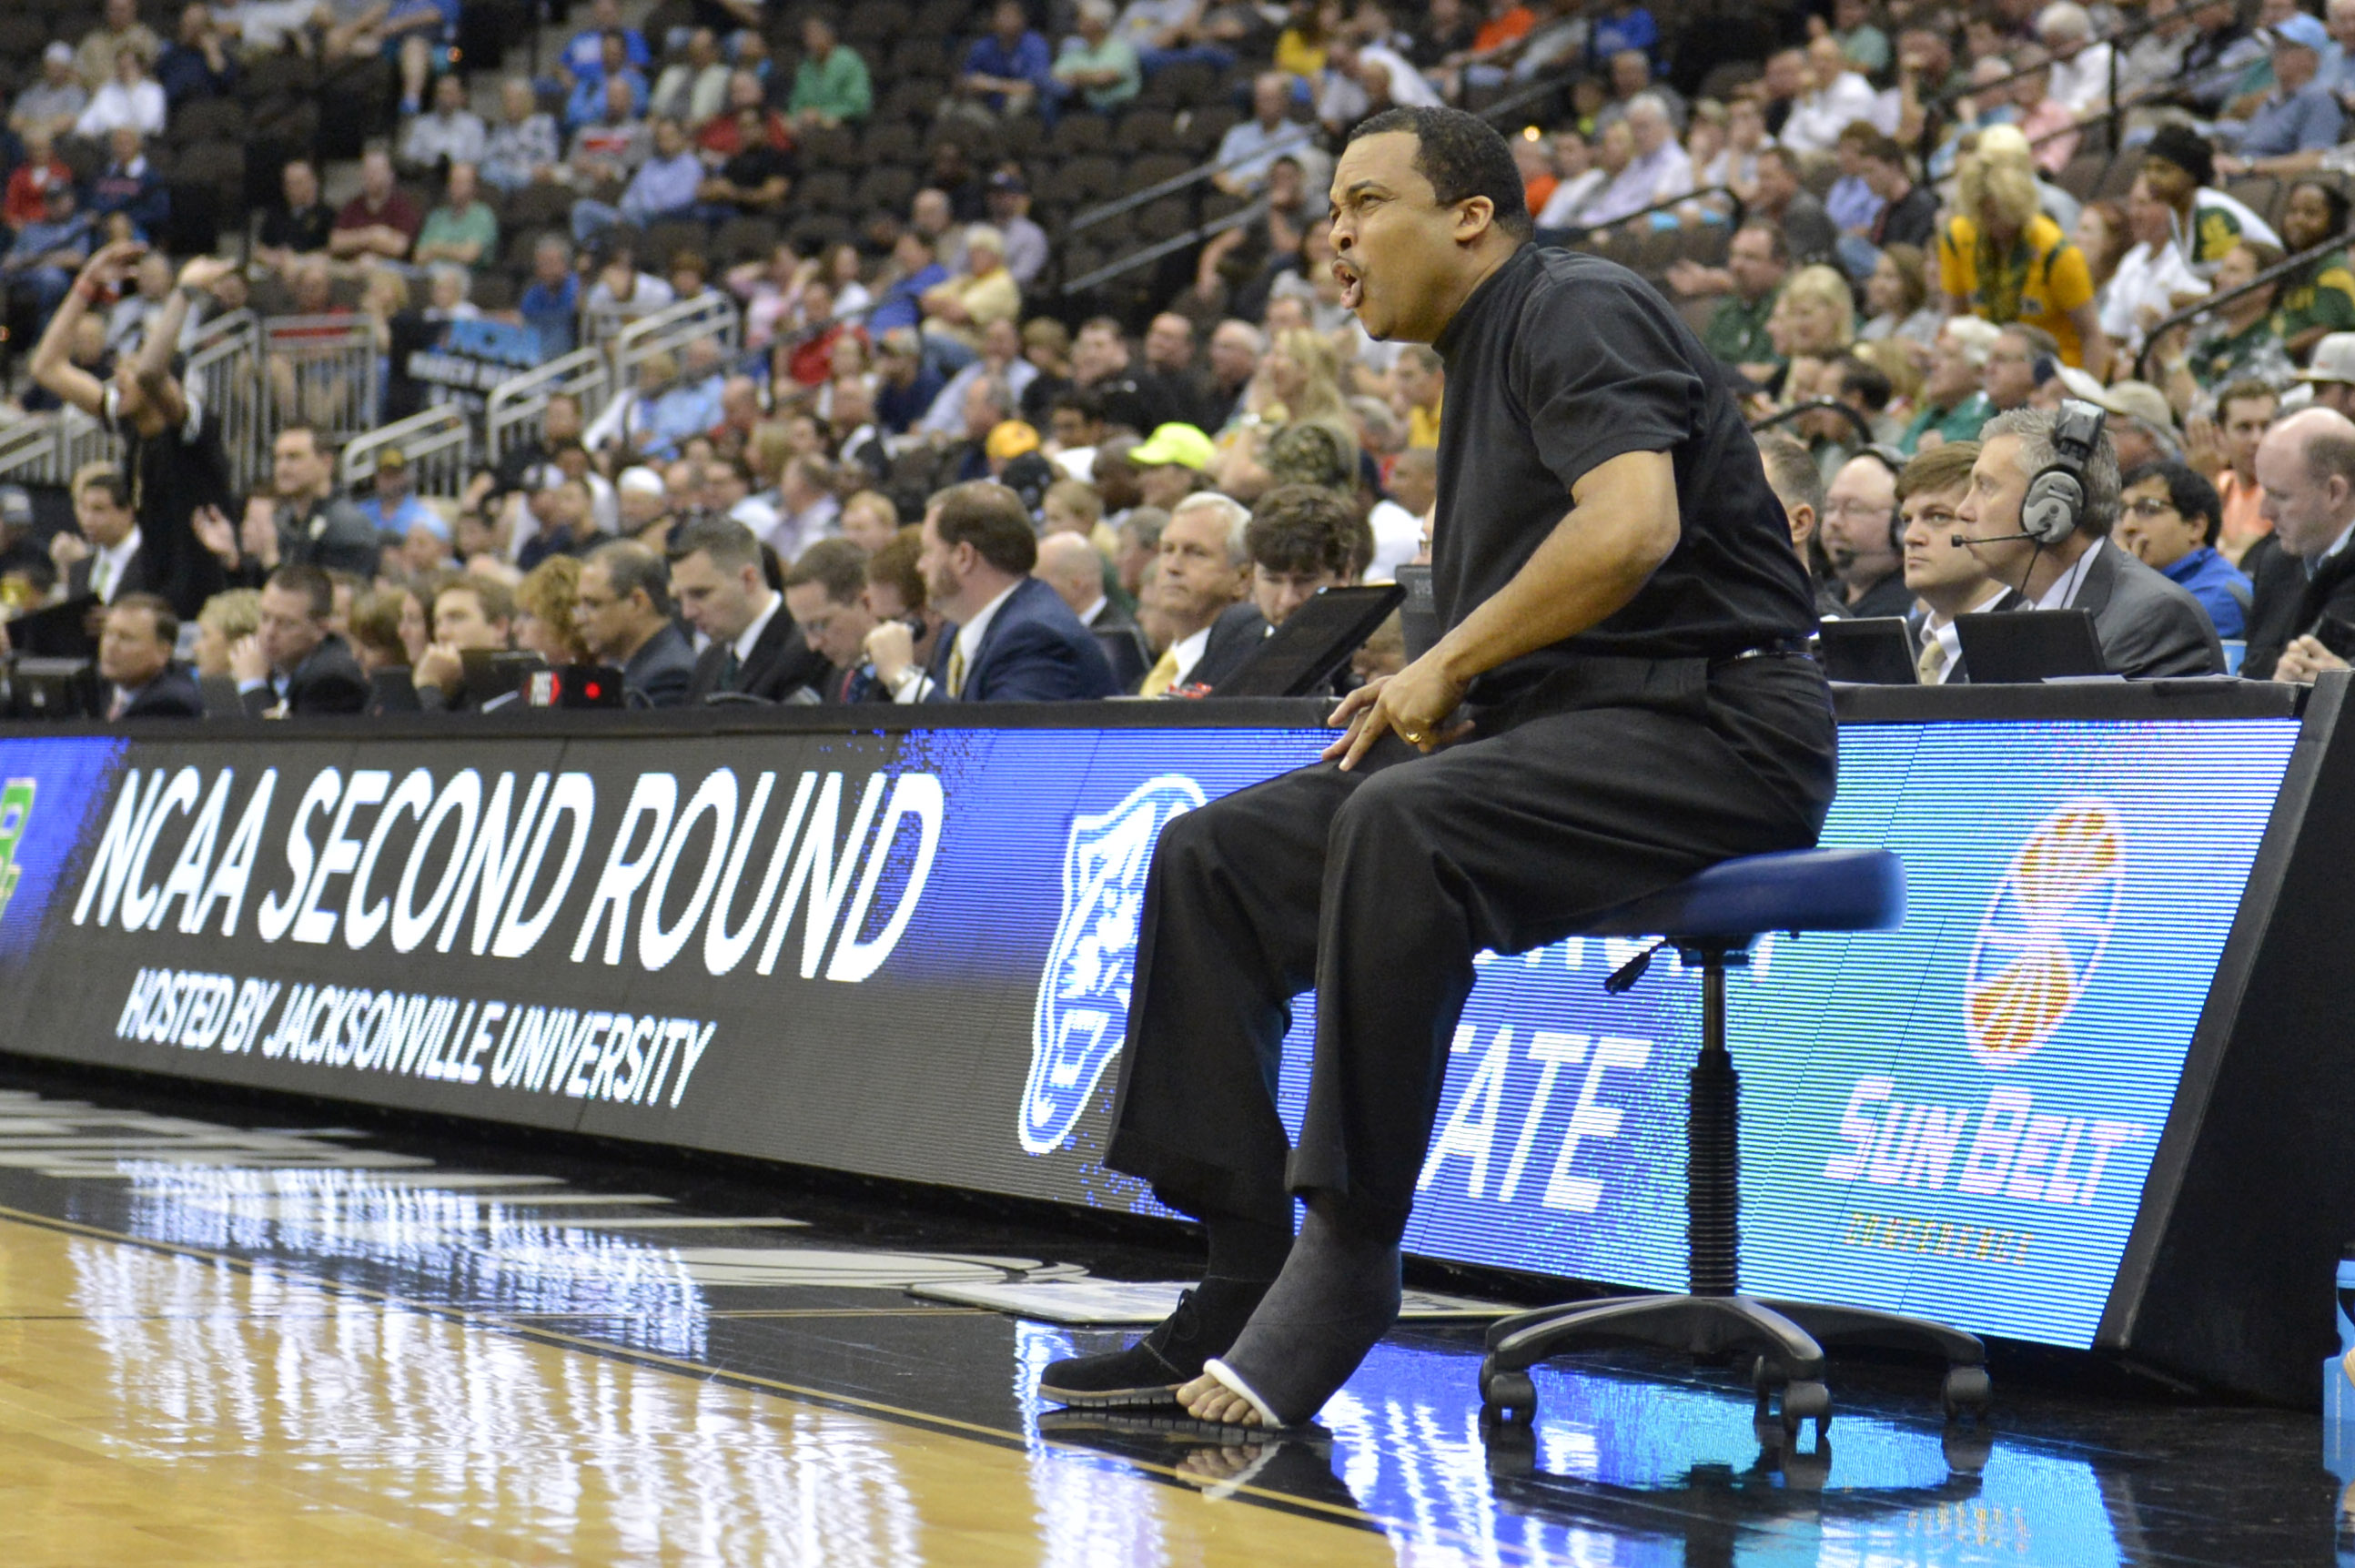 Georgia State coach worried about the Secret Service after President Obama joke